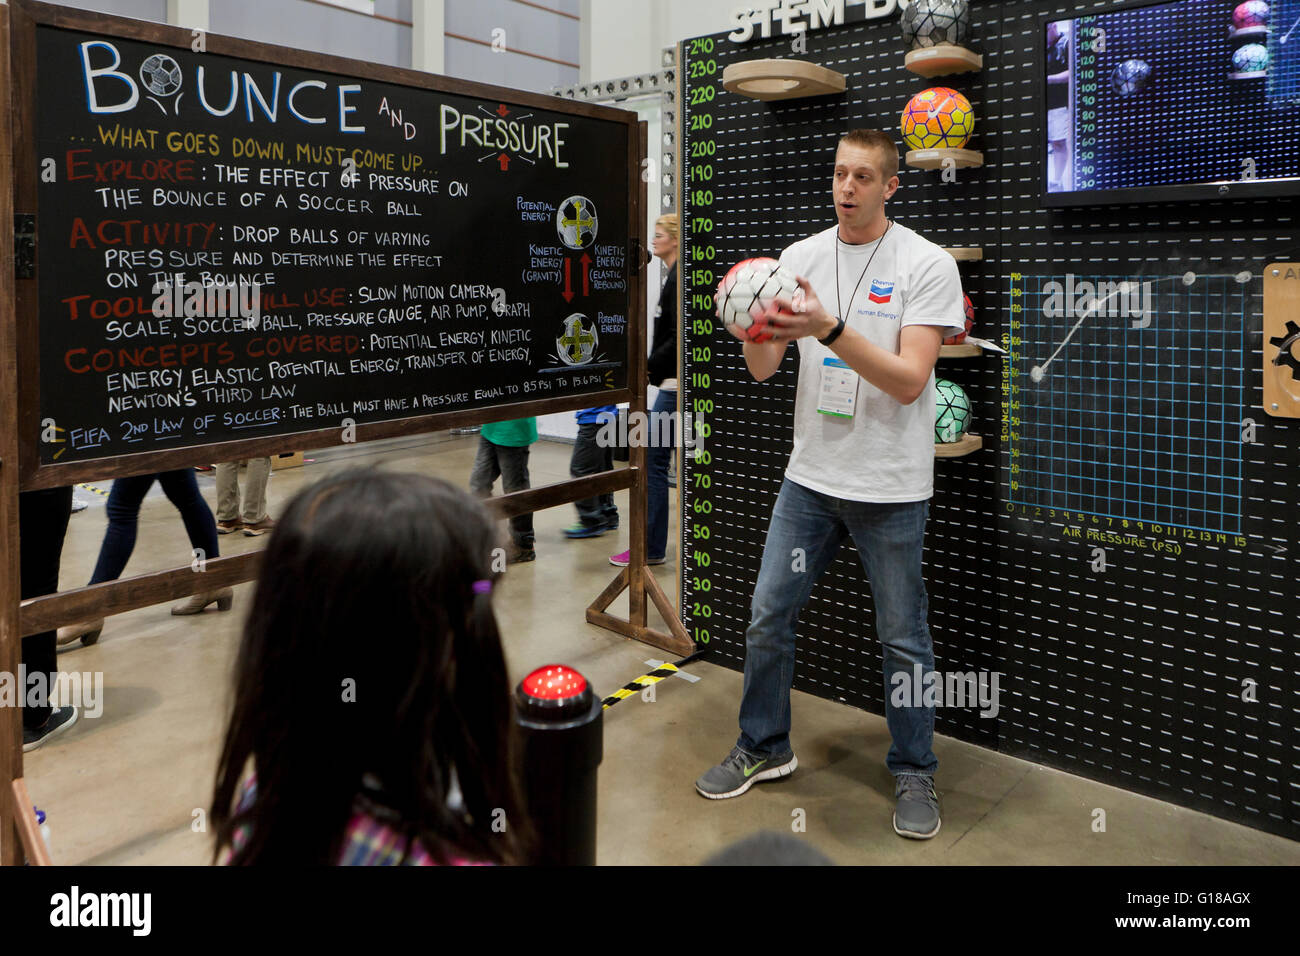 A scientist demonstrating potential energy and kinetic energy with soccer ball bounce at science fair - USA - Stock Image